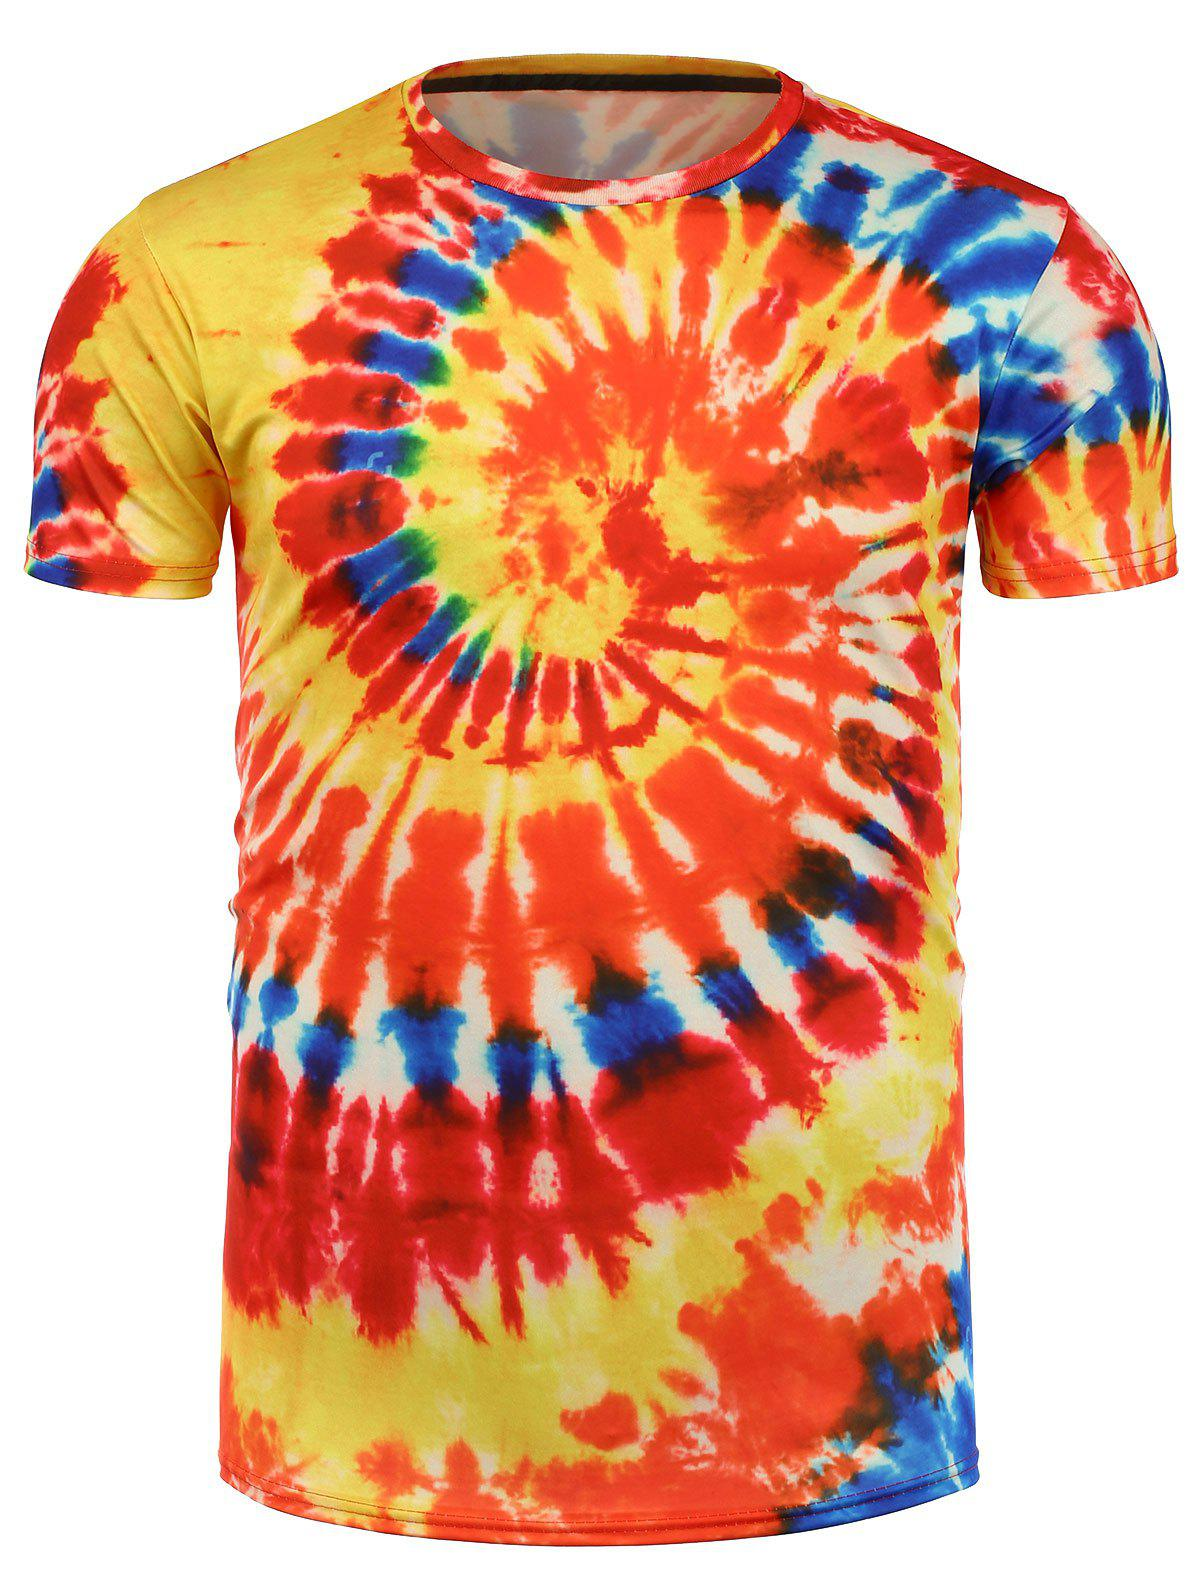 All Over T-shirt imprimé Tie Dye - FF F 3XL